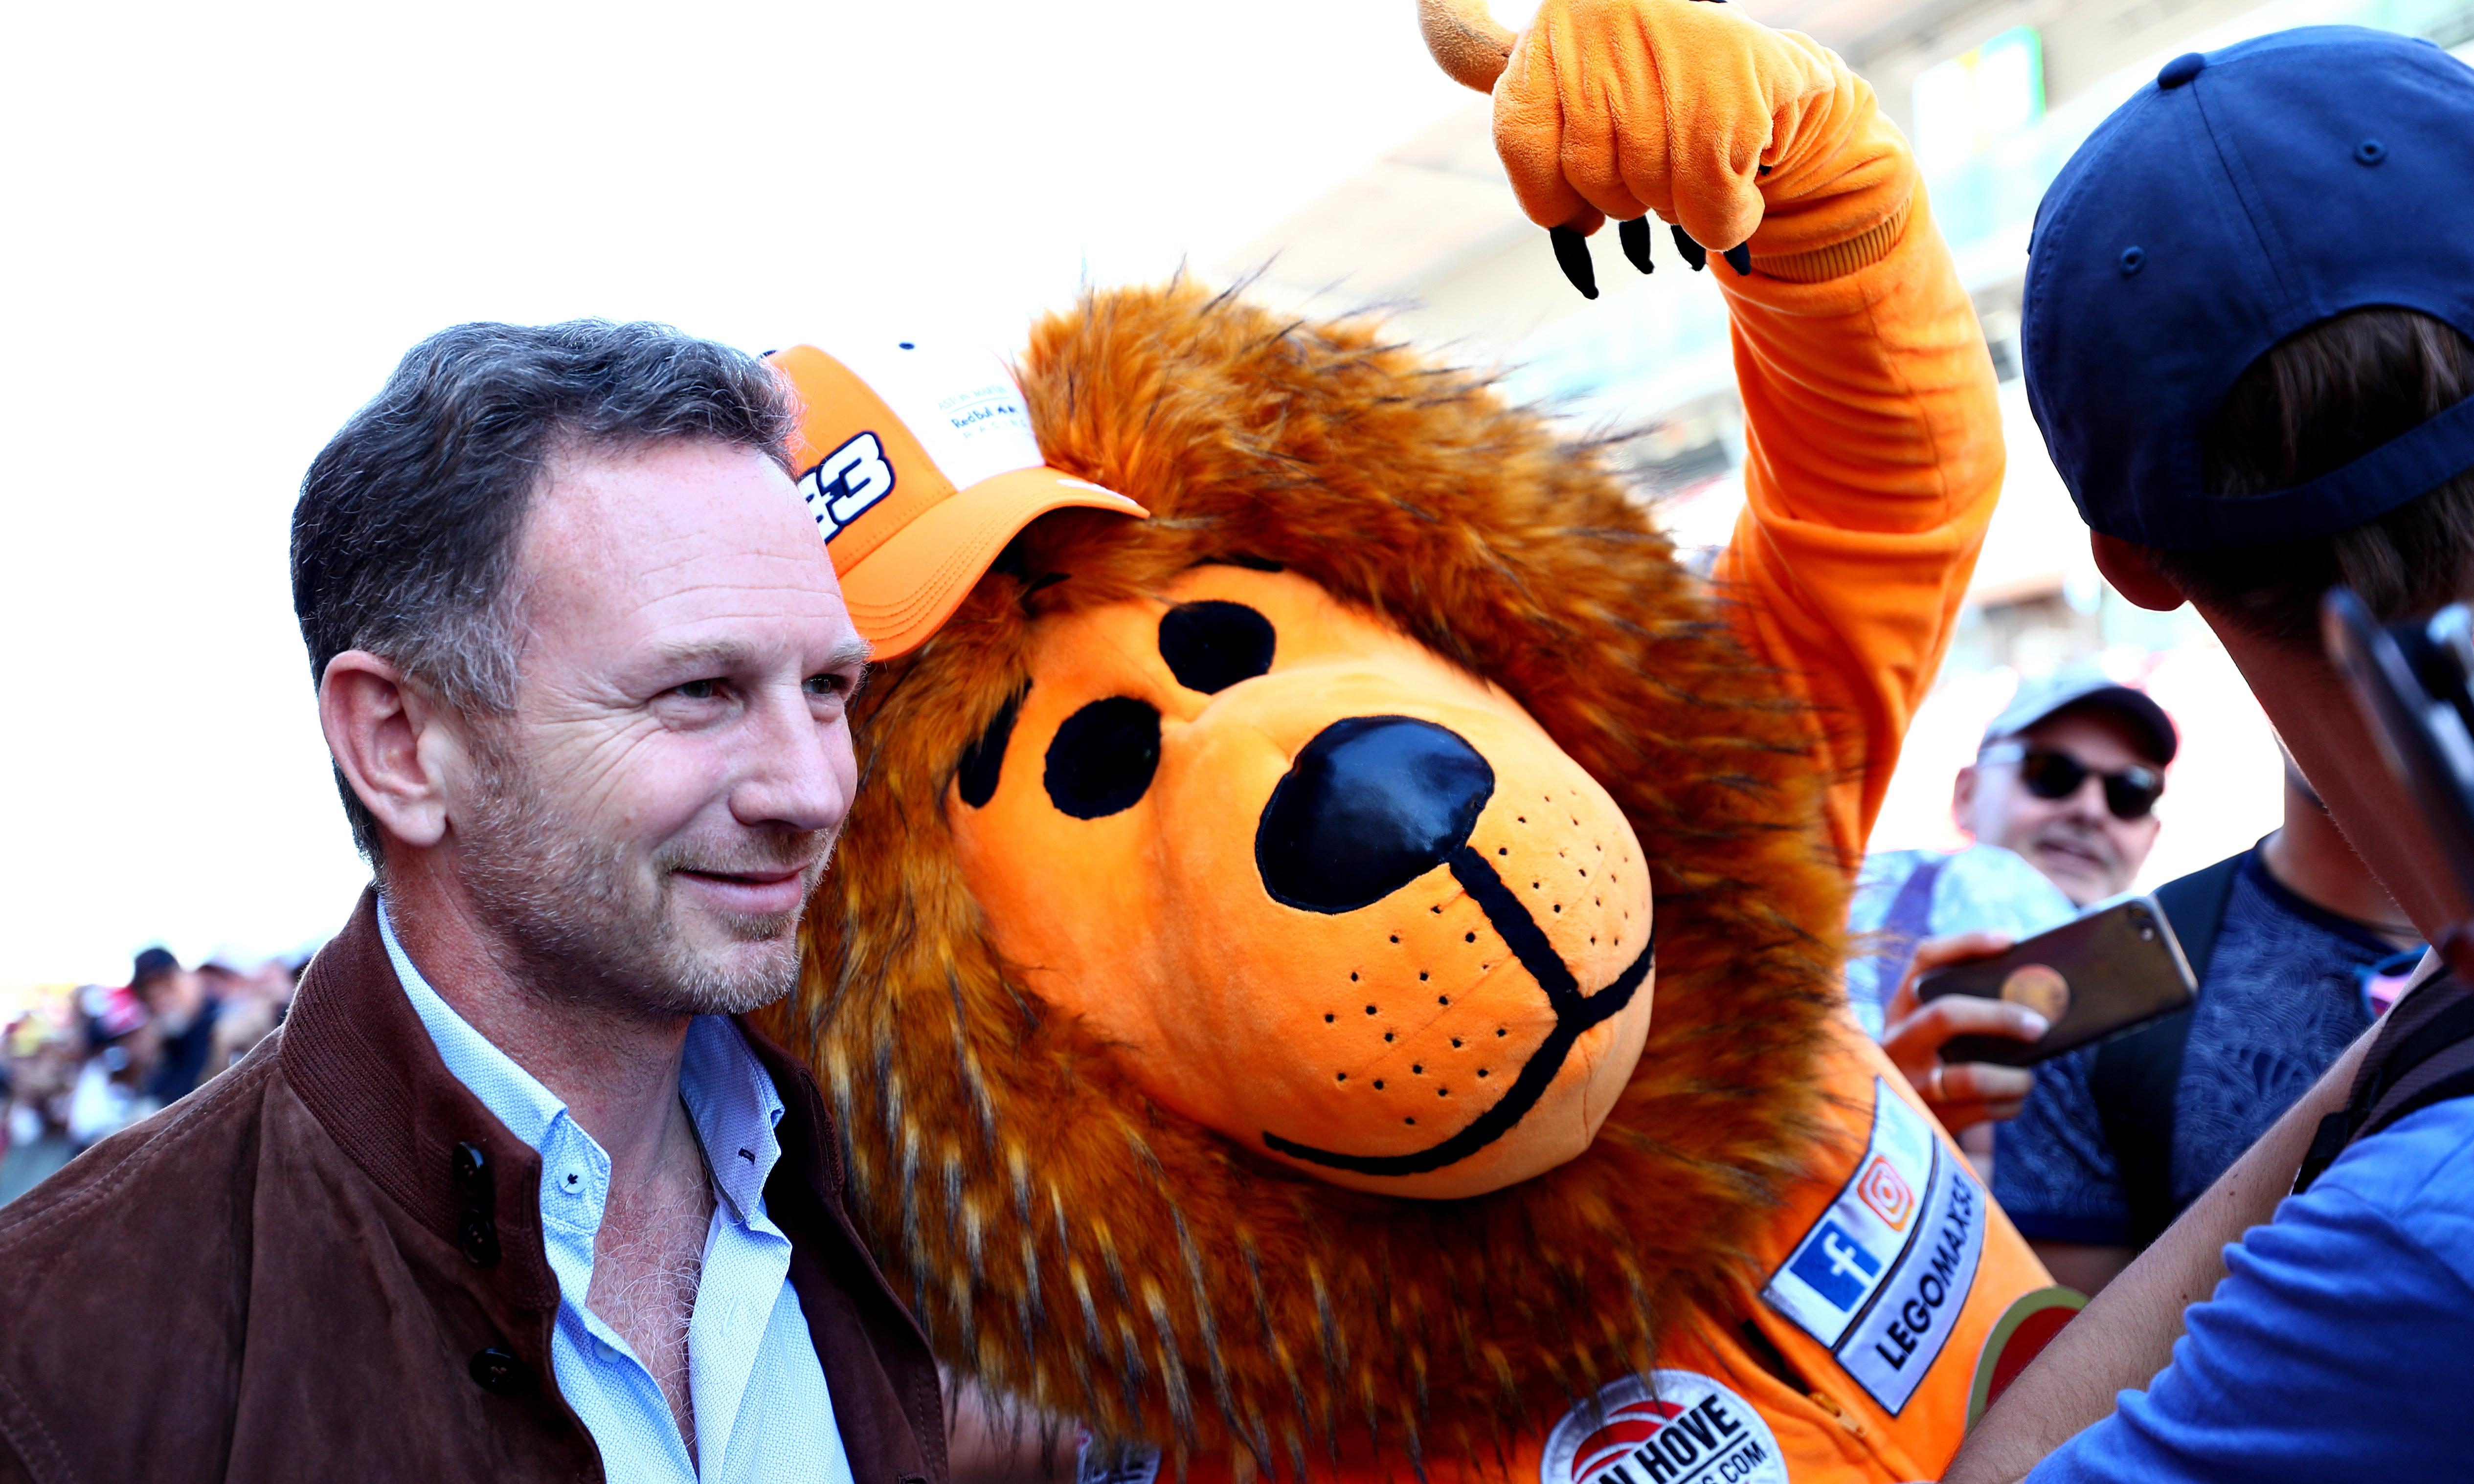 Christian Horner: 'The F1 product is fundamentally wrong and needs addressing'